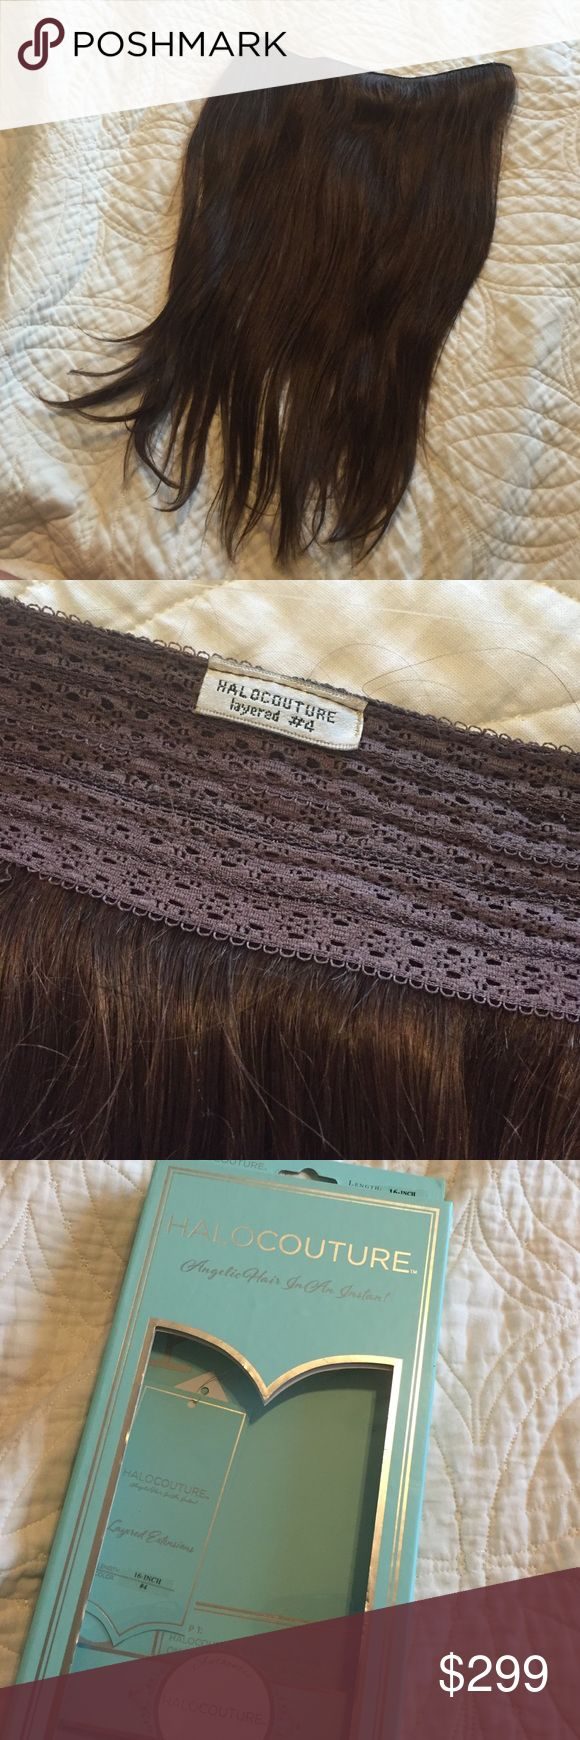 Halocouture layered Halo Hair Extensions